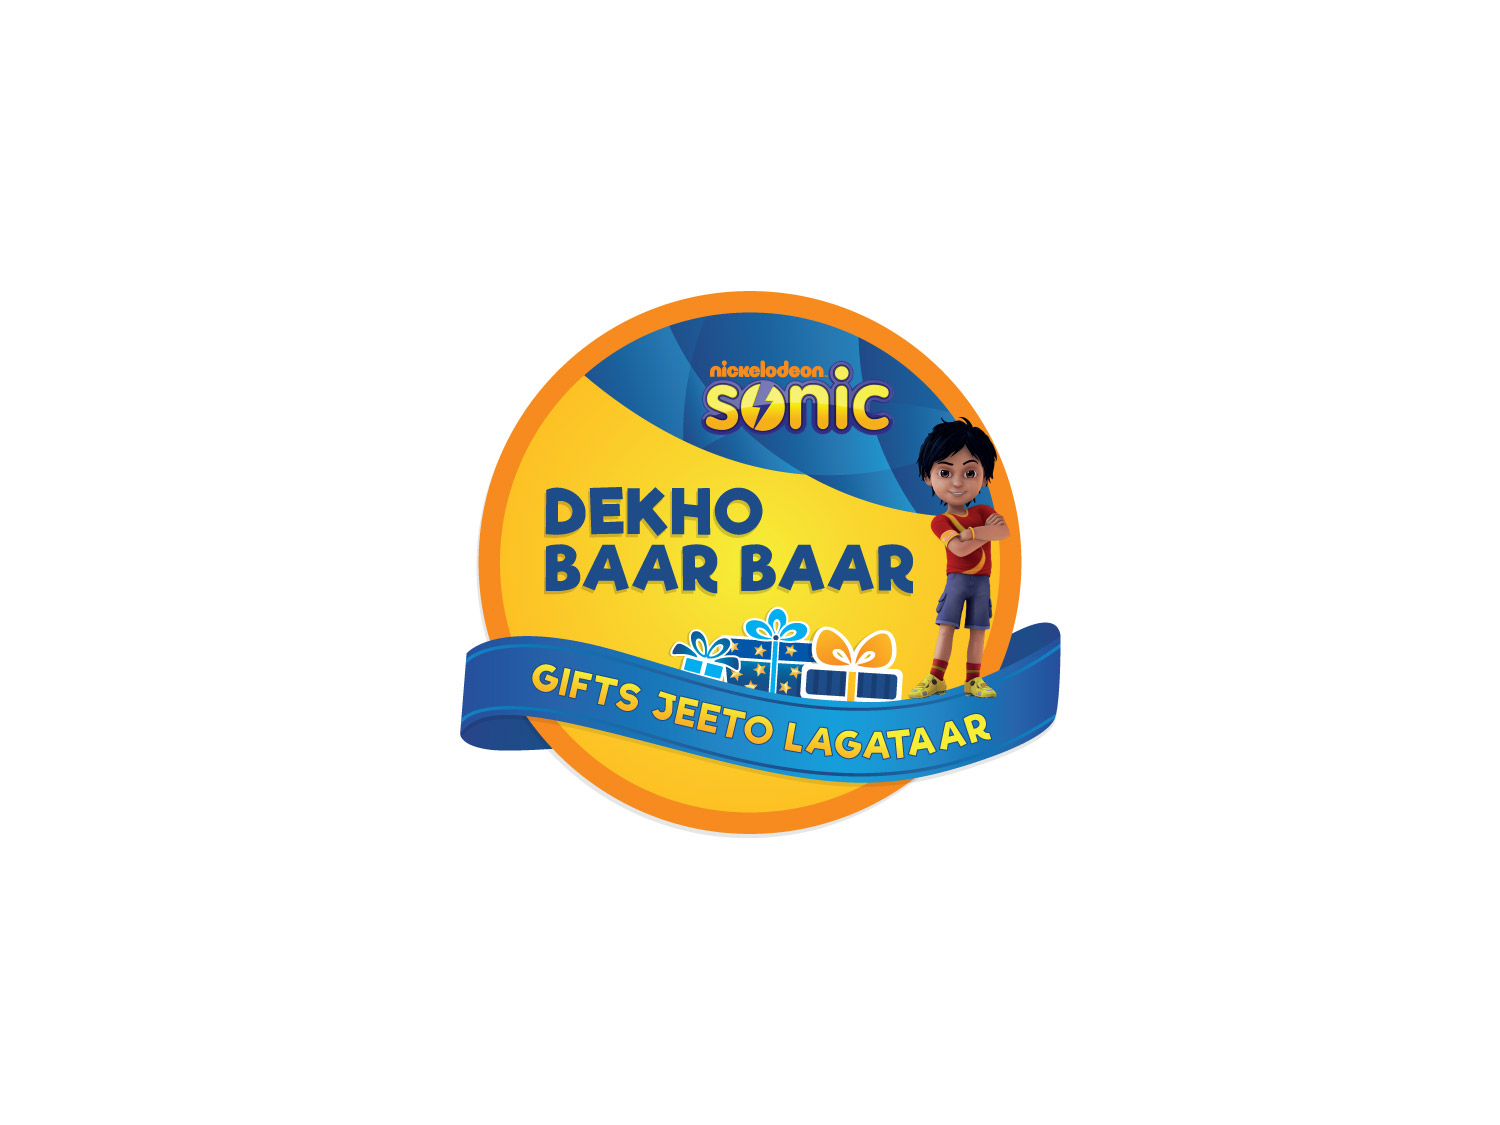 Sonic approved logo